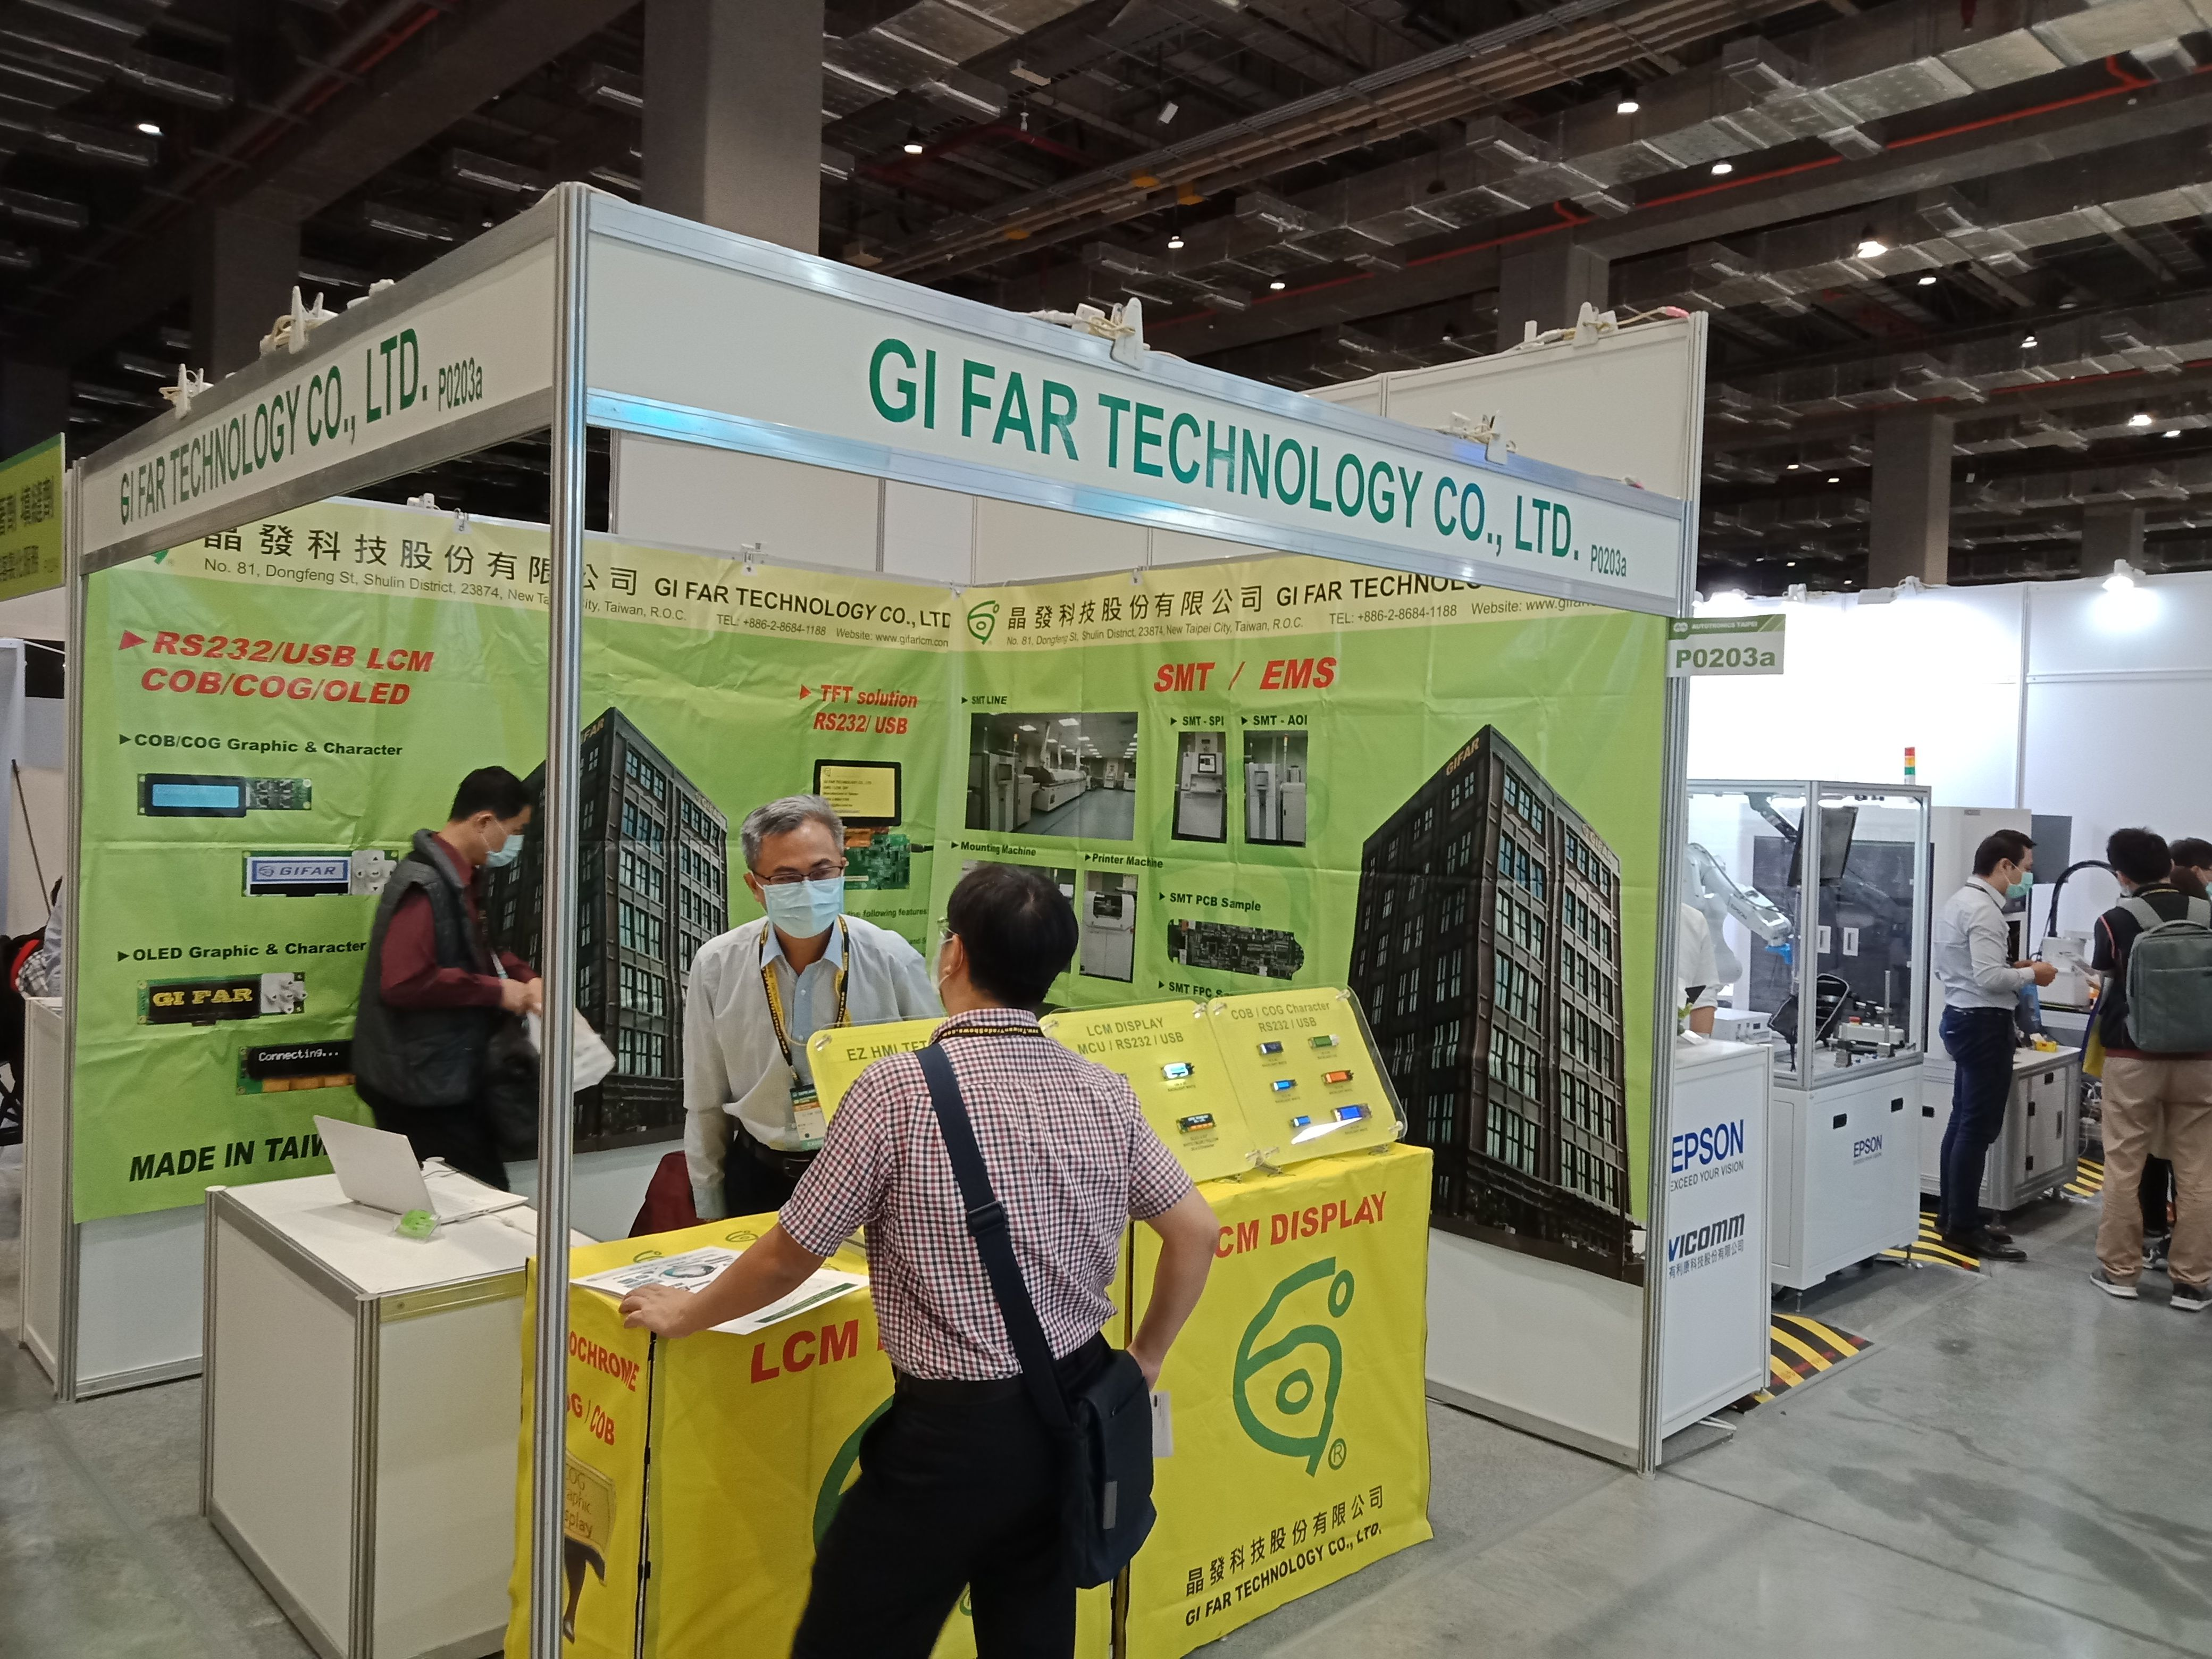 https://storage.googleapis.com/www.taiwantradeshow.com.tw/activity-photo/202010/T-25732872-name.jpg